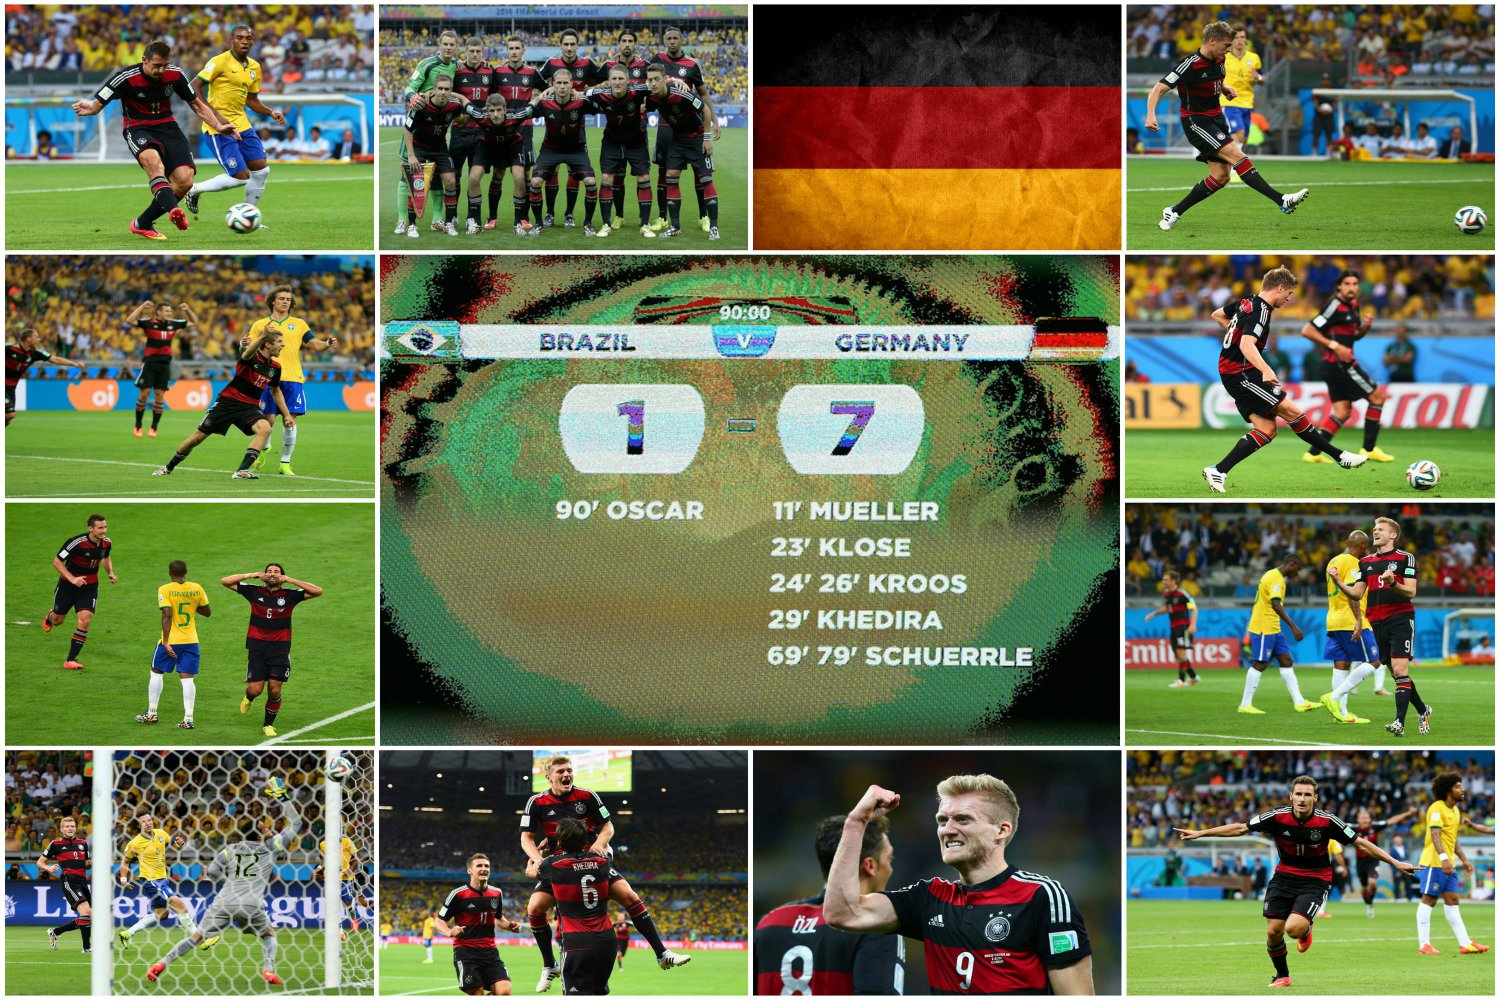 18 x 12 Photo - Football - FIFA World Cup - Collage of The 7-1 Germany win against Brazil